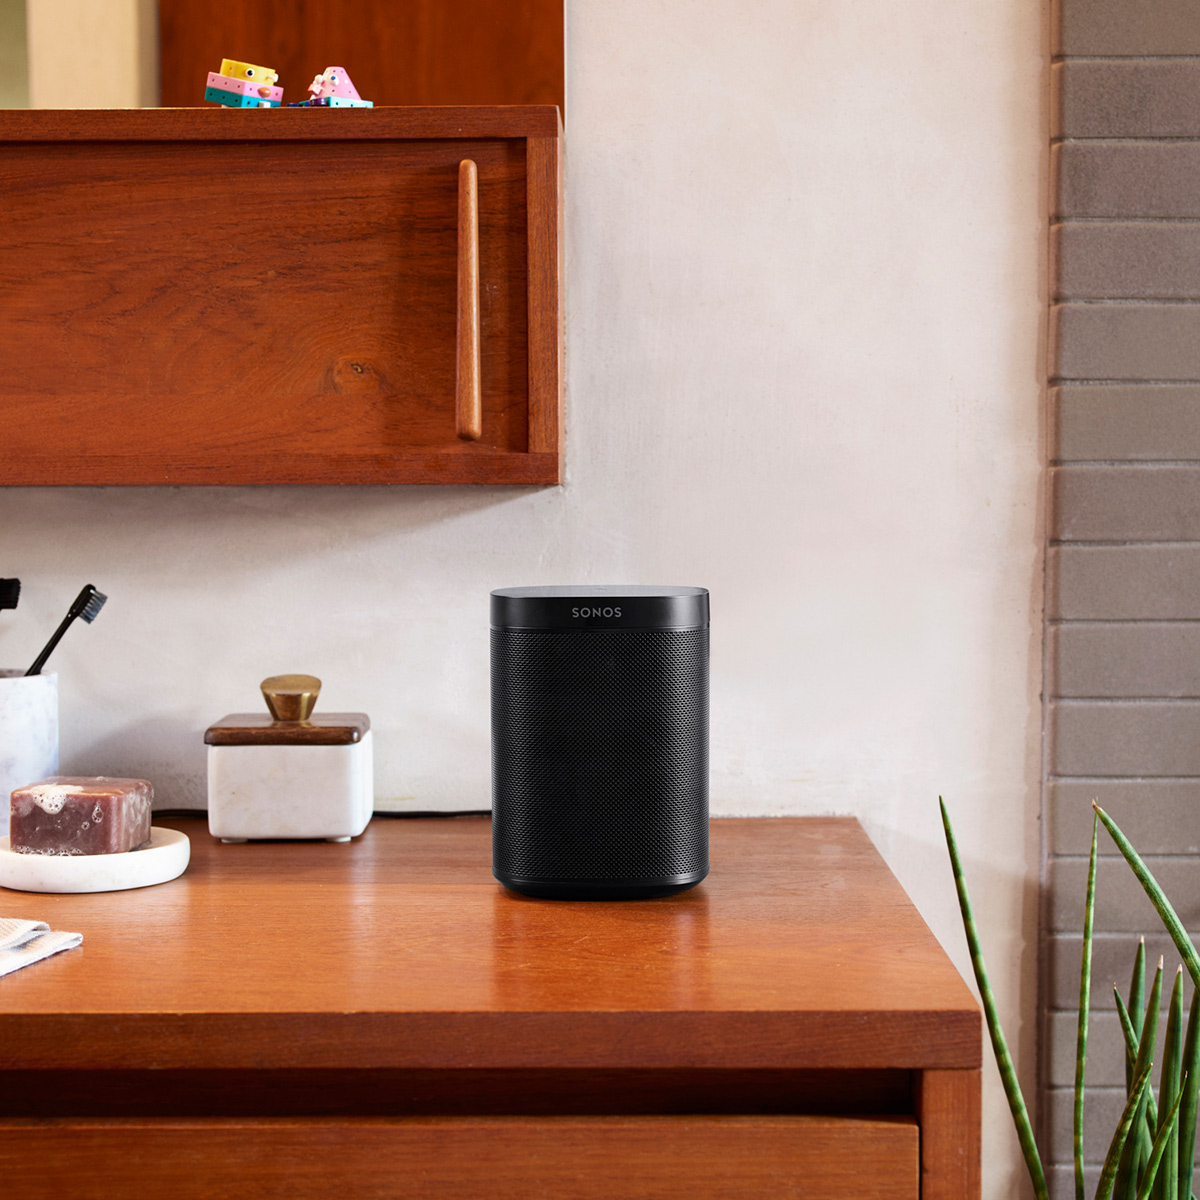 Sonos-Two-Room-Set-with-Sonos-One-Gen-2-Smart-Speaker-with-Alexa-Voice-Control thumbnail 11